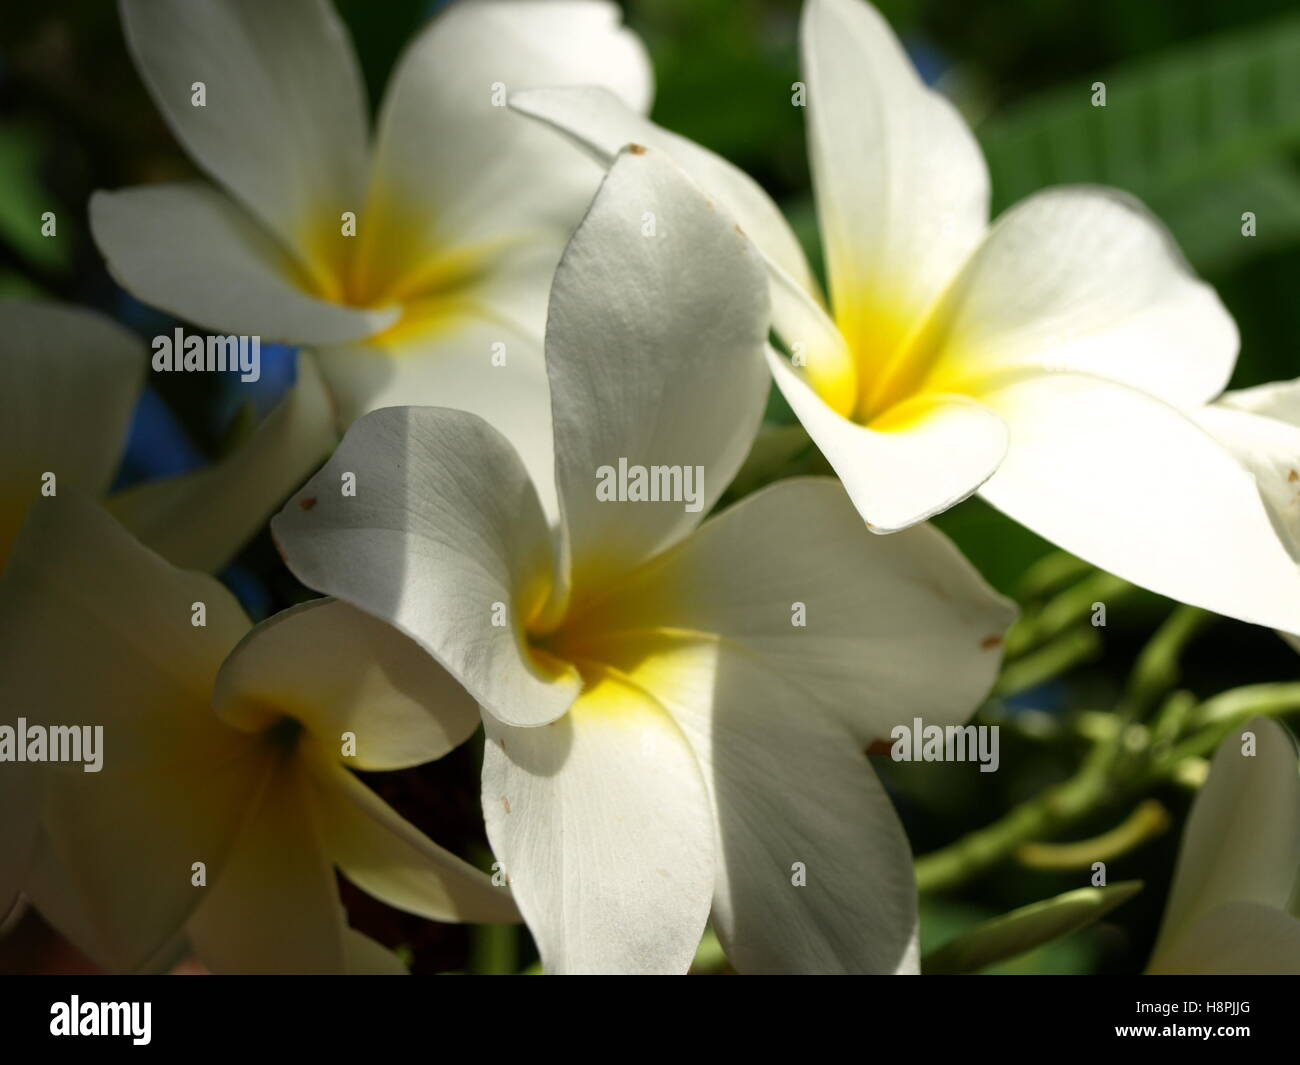 White flowers yellow center stock photos white flowers yellow pretty white and yellow flowers on a flowering tree stock image mightylinksfo